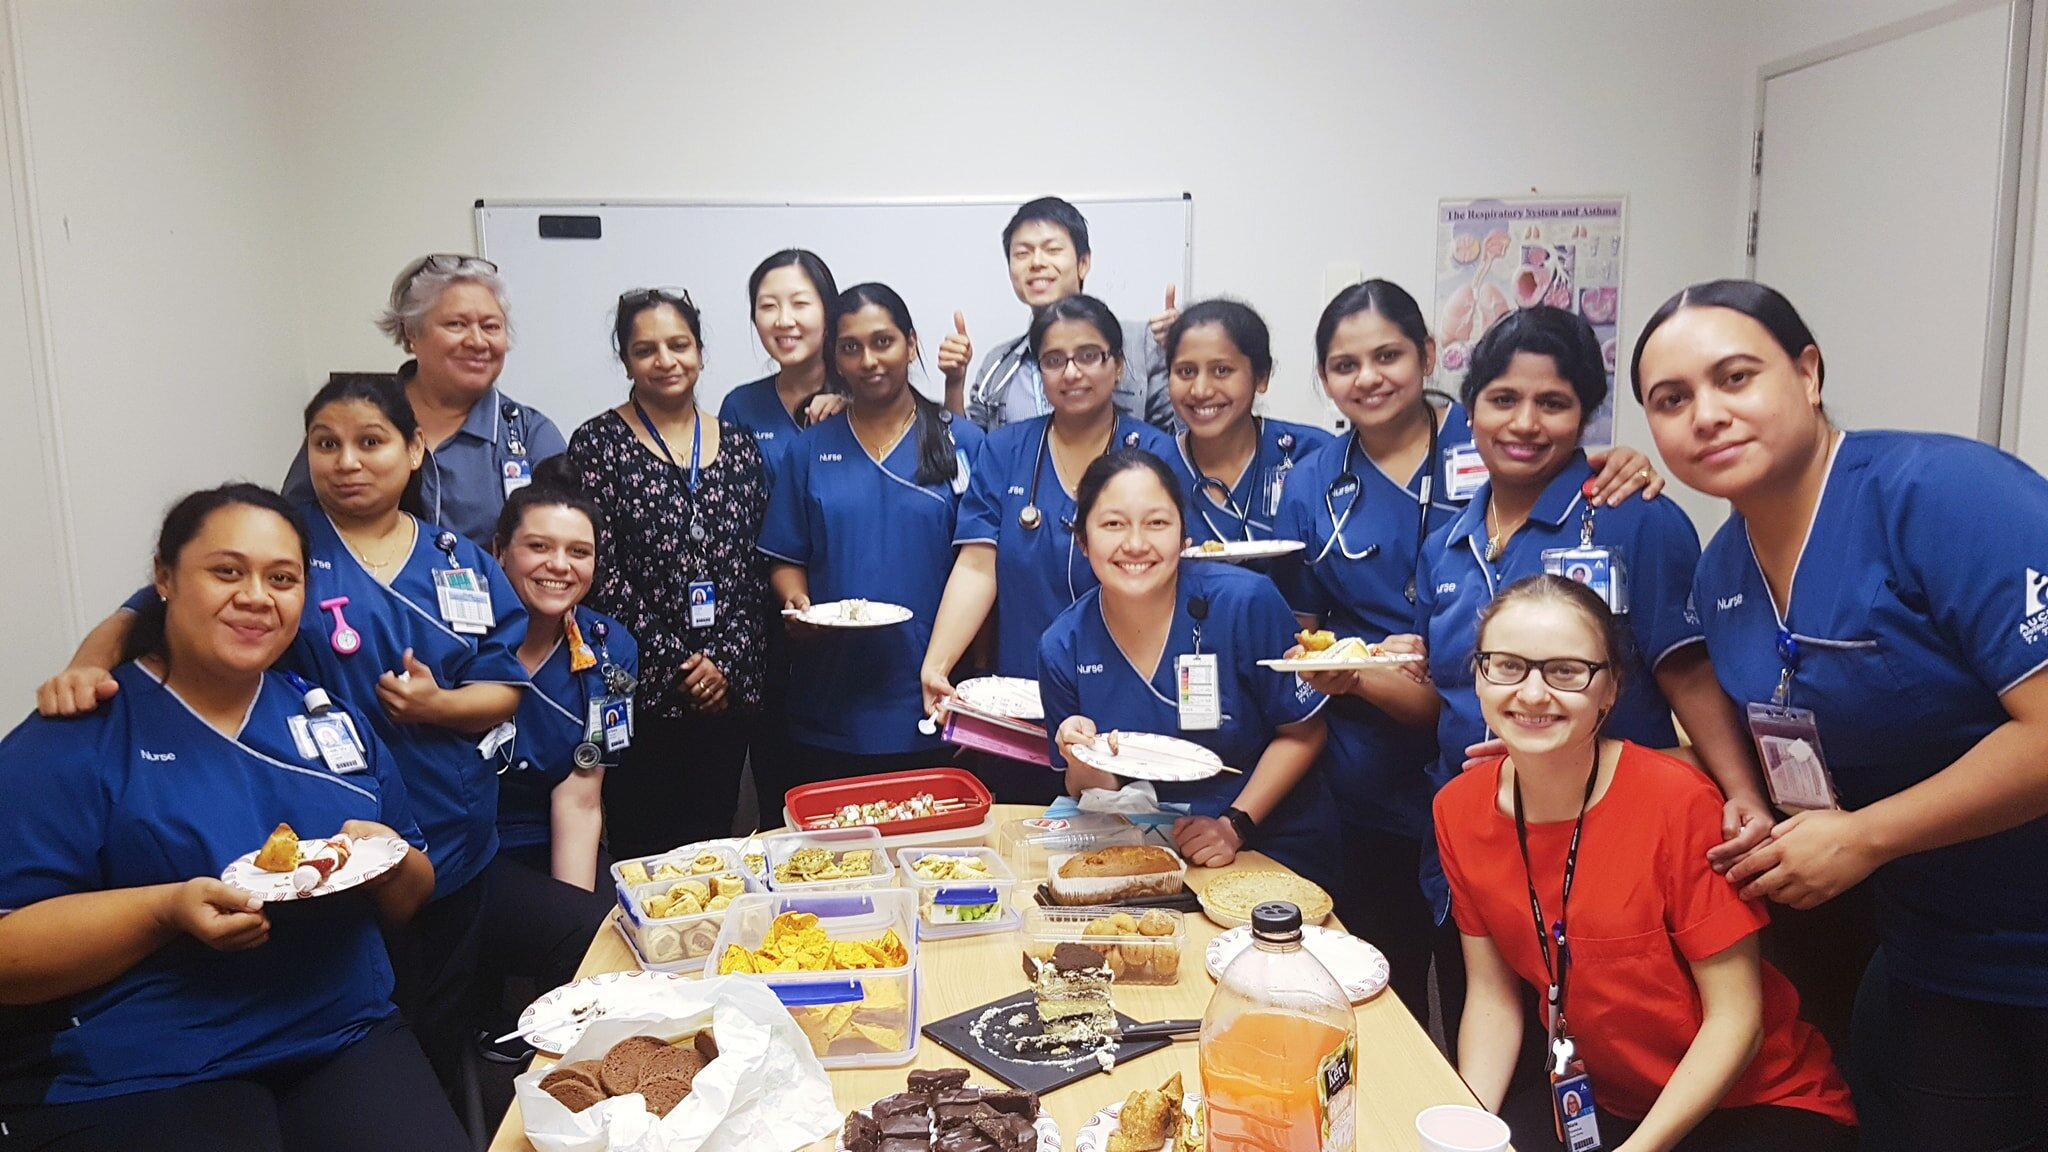 Maria and the nurses of Auckland DHB having a shared lunch